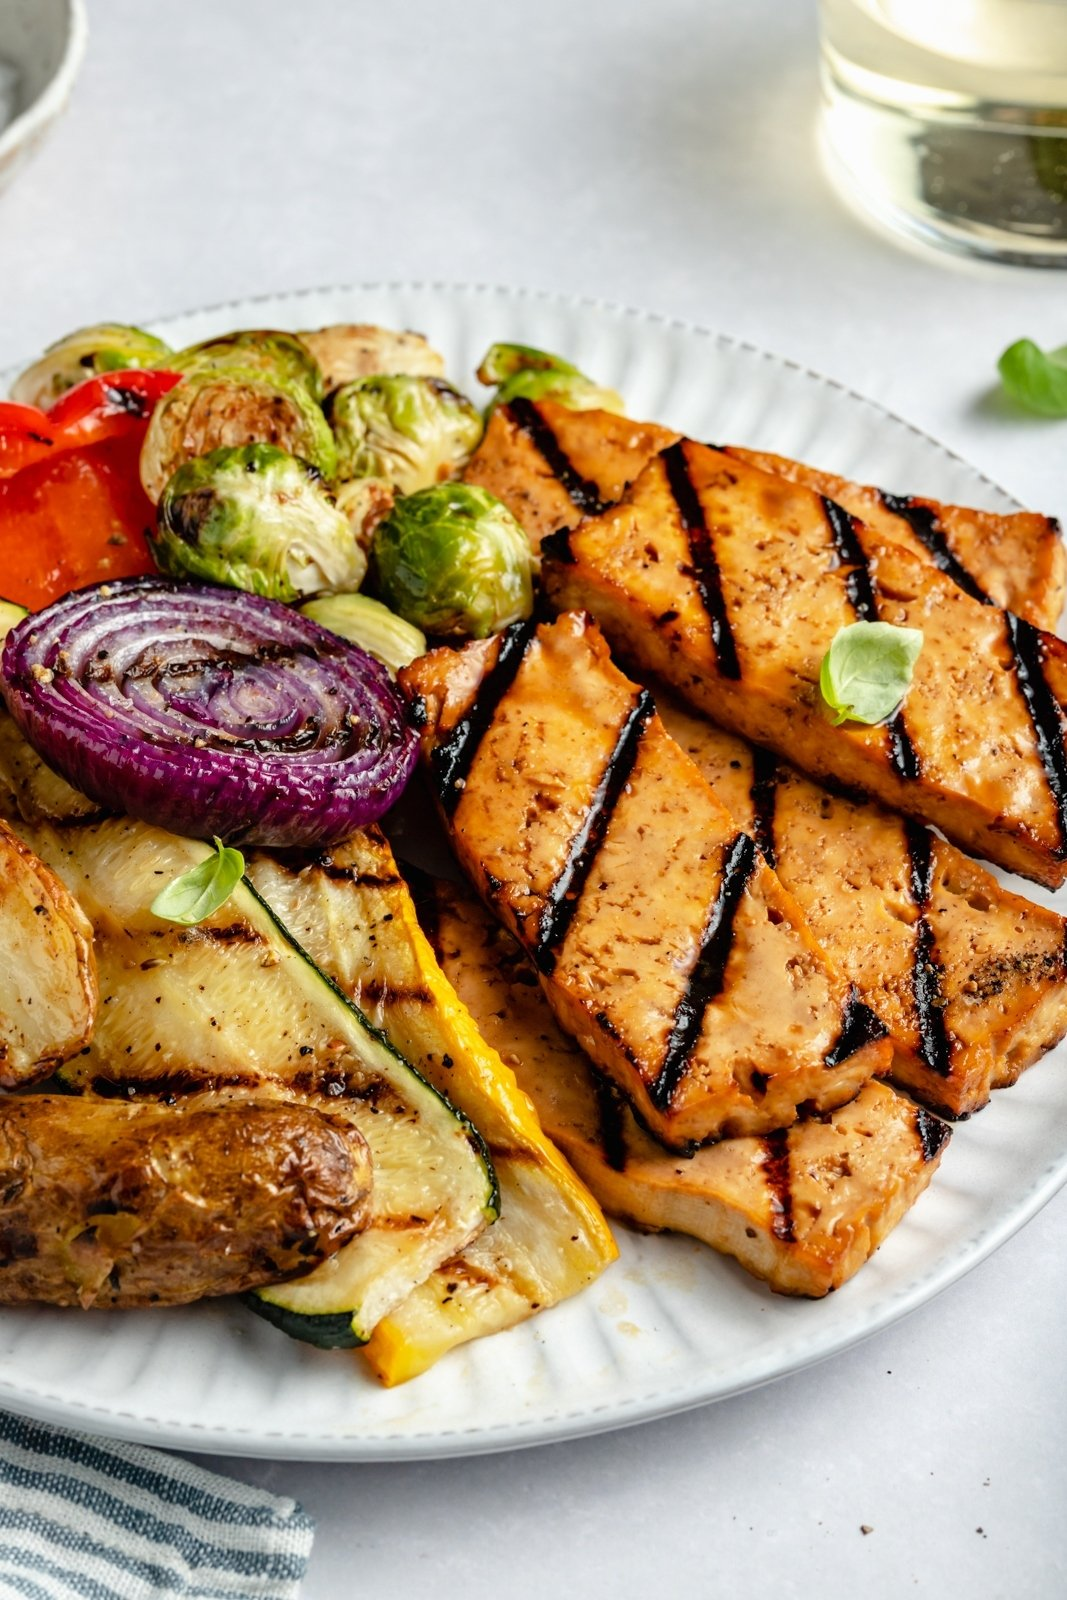 grilled tofu on a plate with grilled vegetables